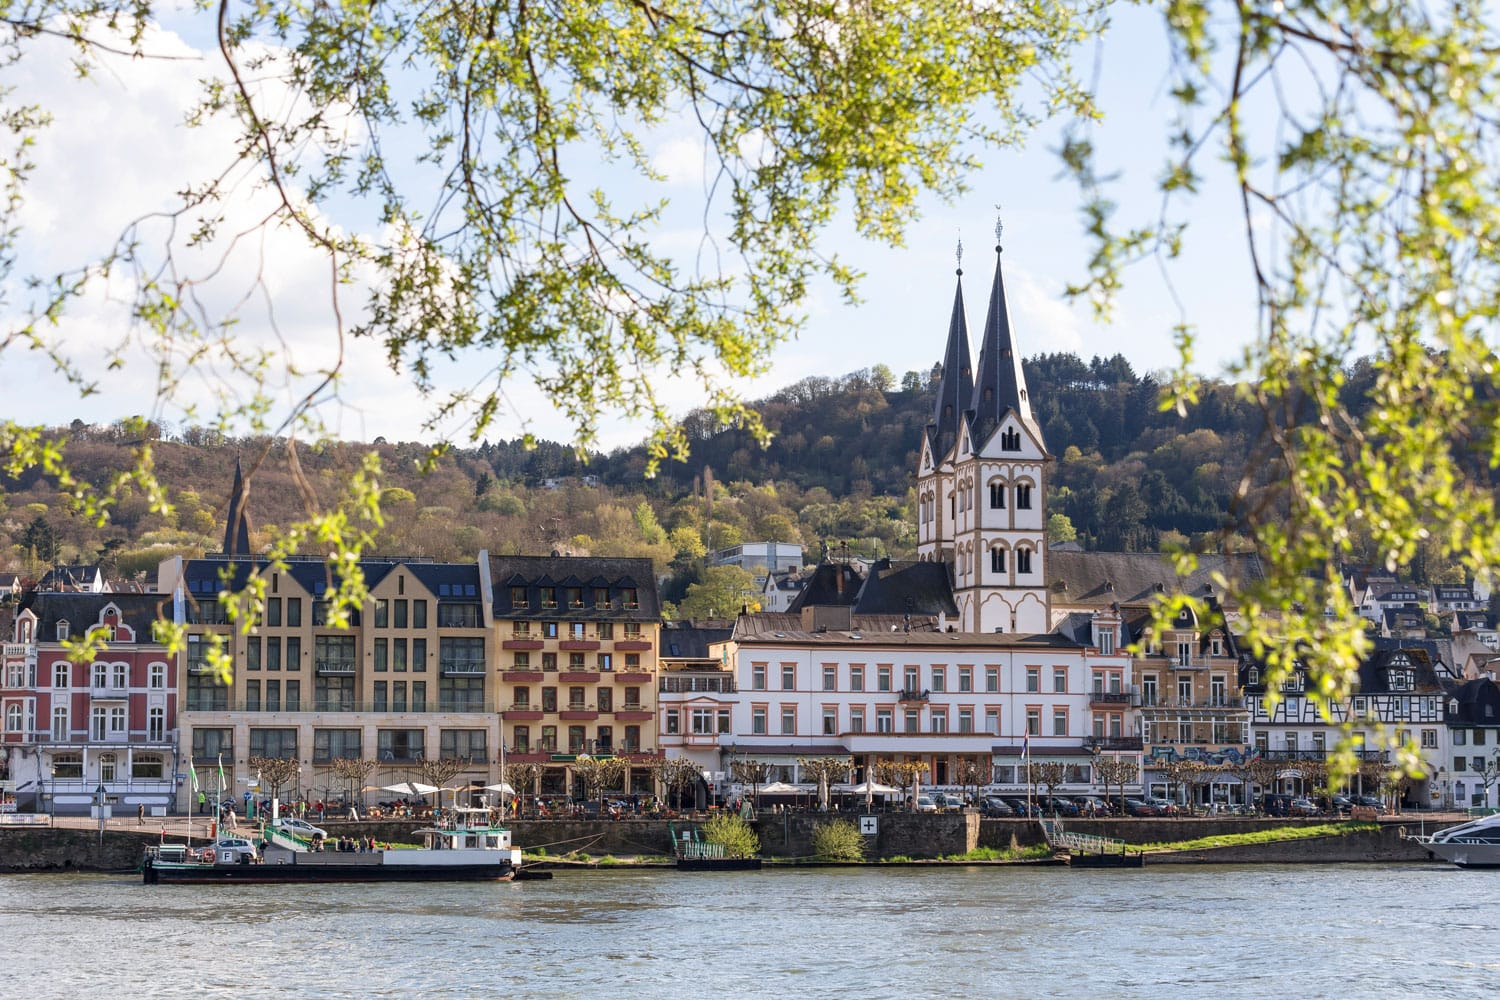 Boppard and the Rhine River in Germany